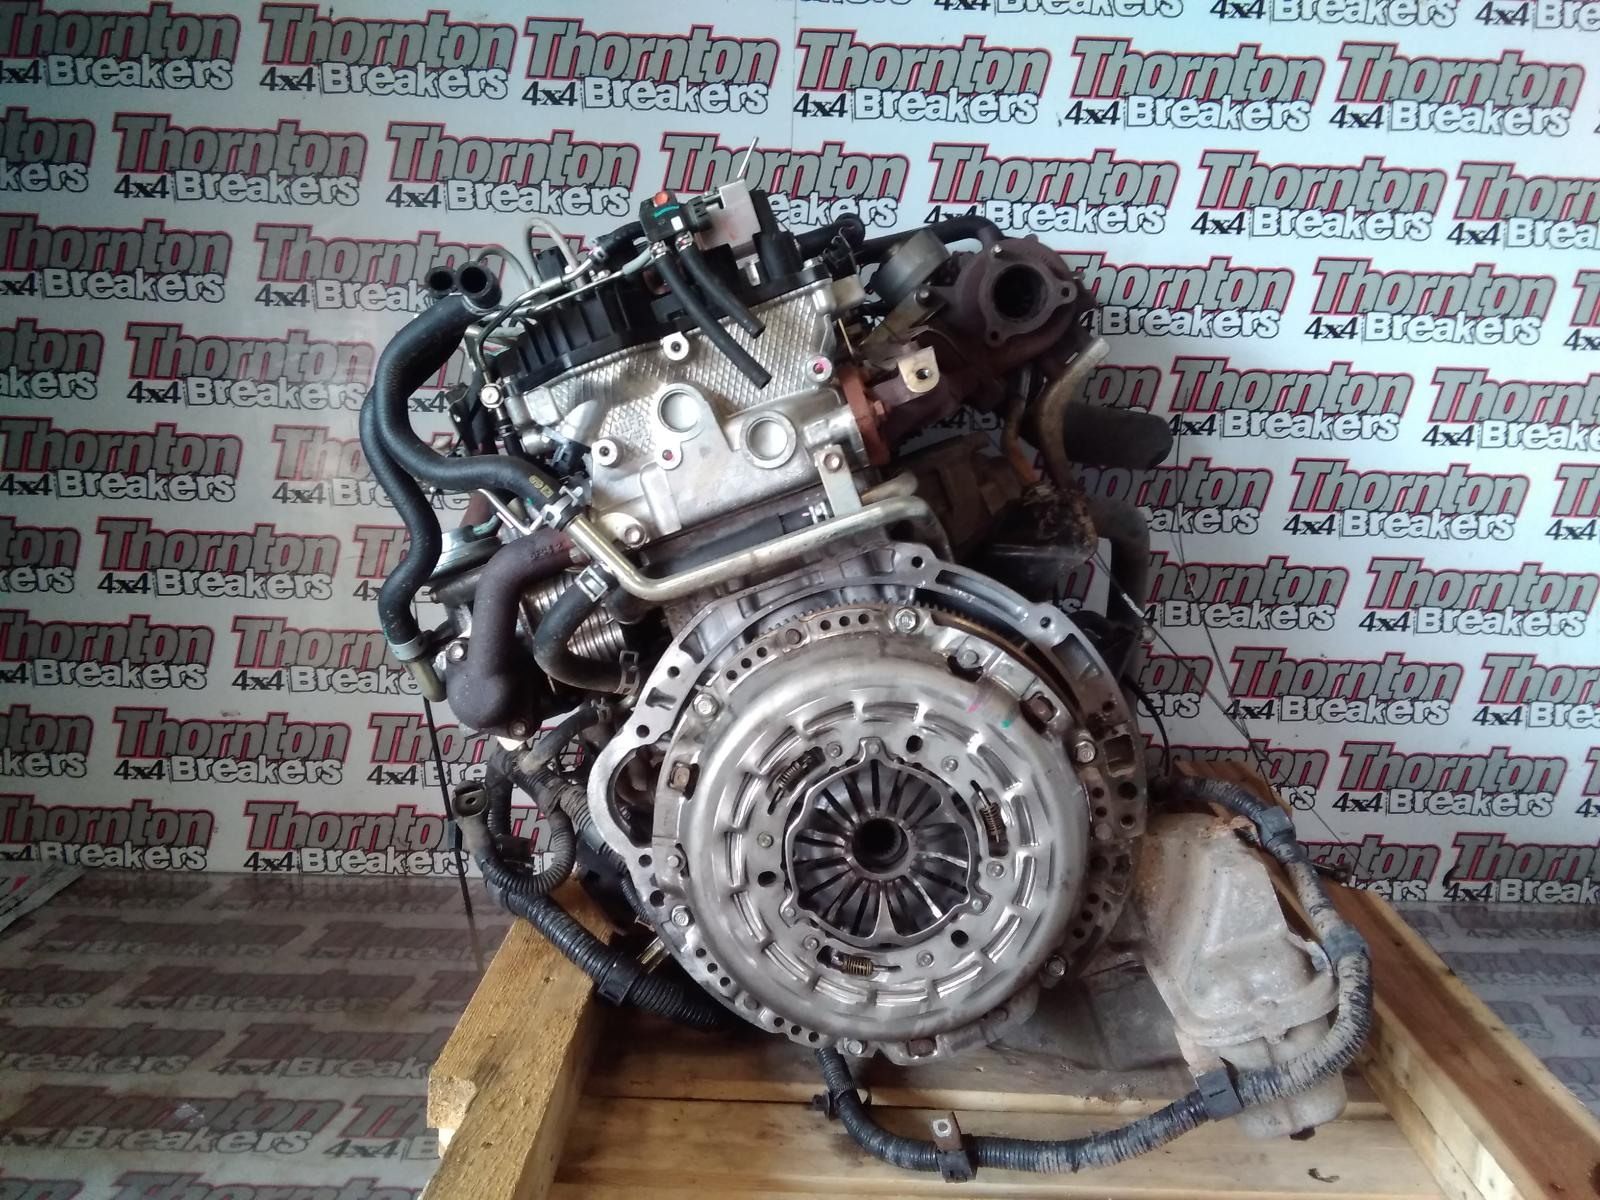 Image for a 2015 MITSUBISHI L200 2.4 Diesel  Engine